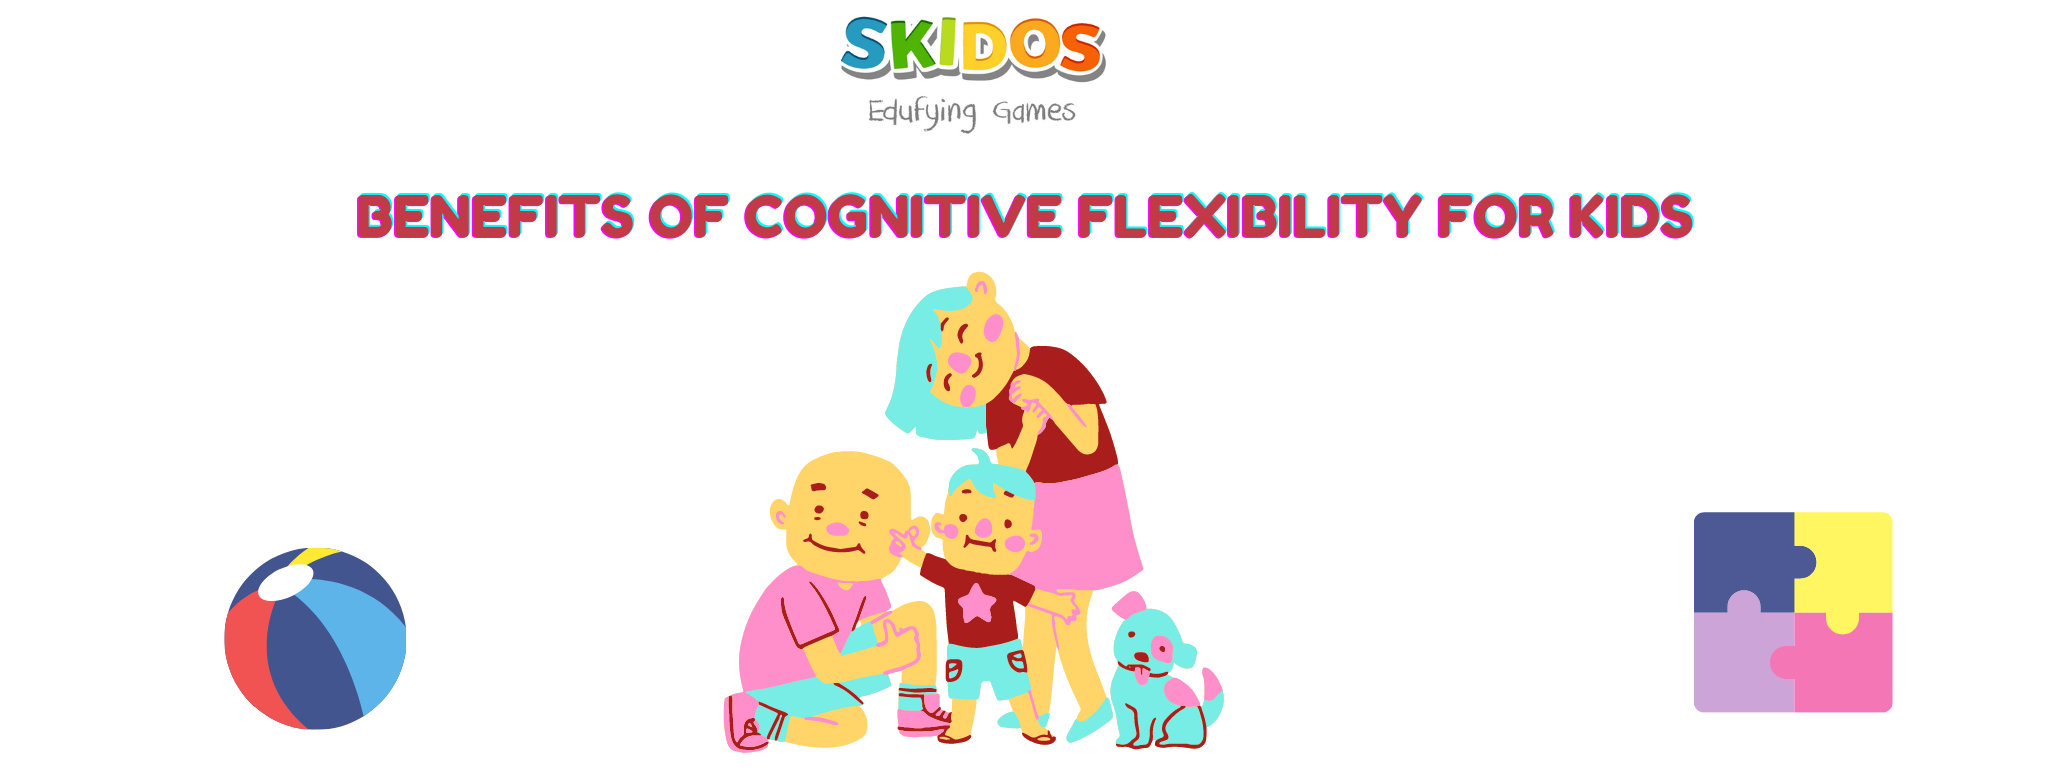 BENEFITS OF cognitive flexibility for kids children students